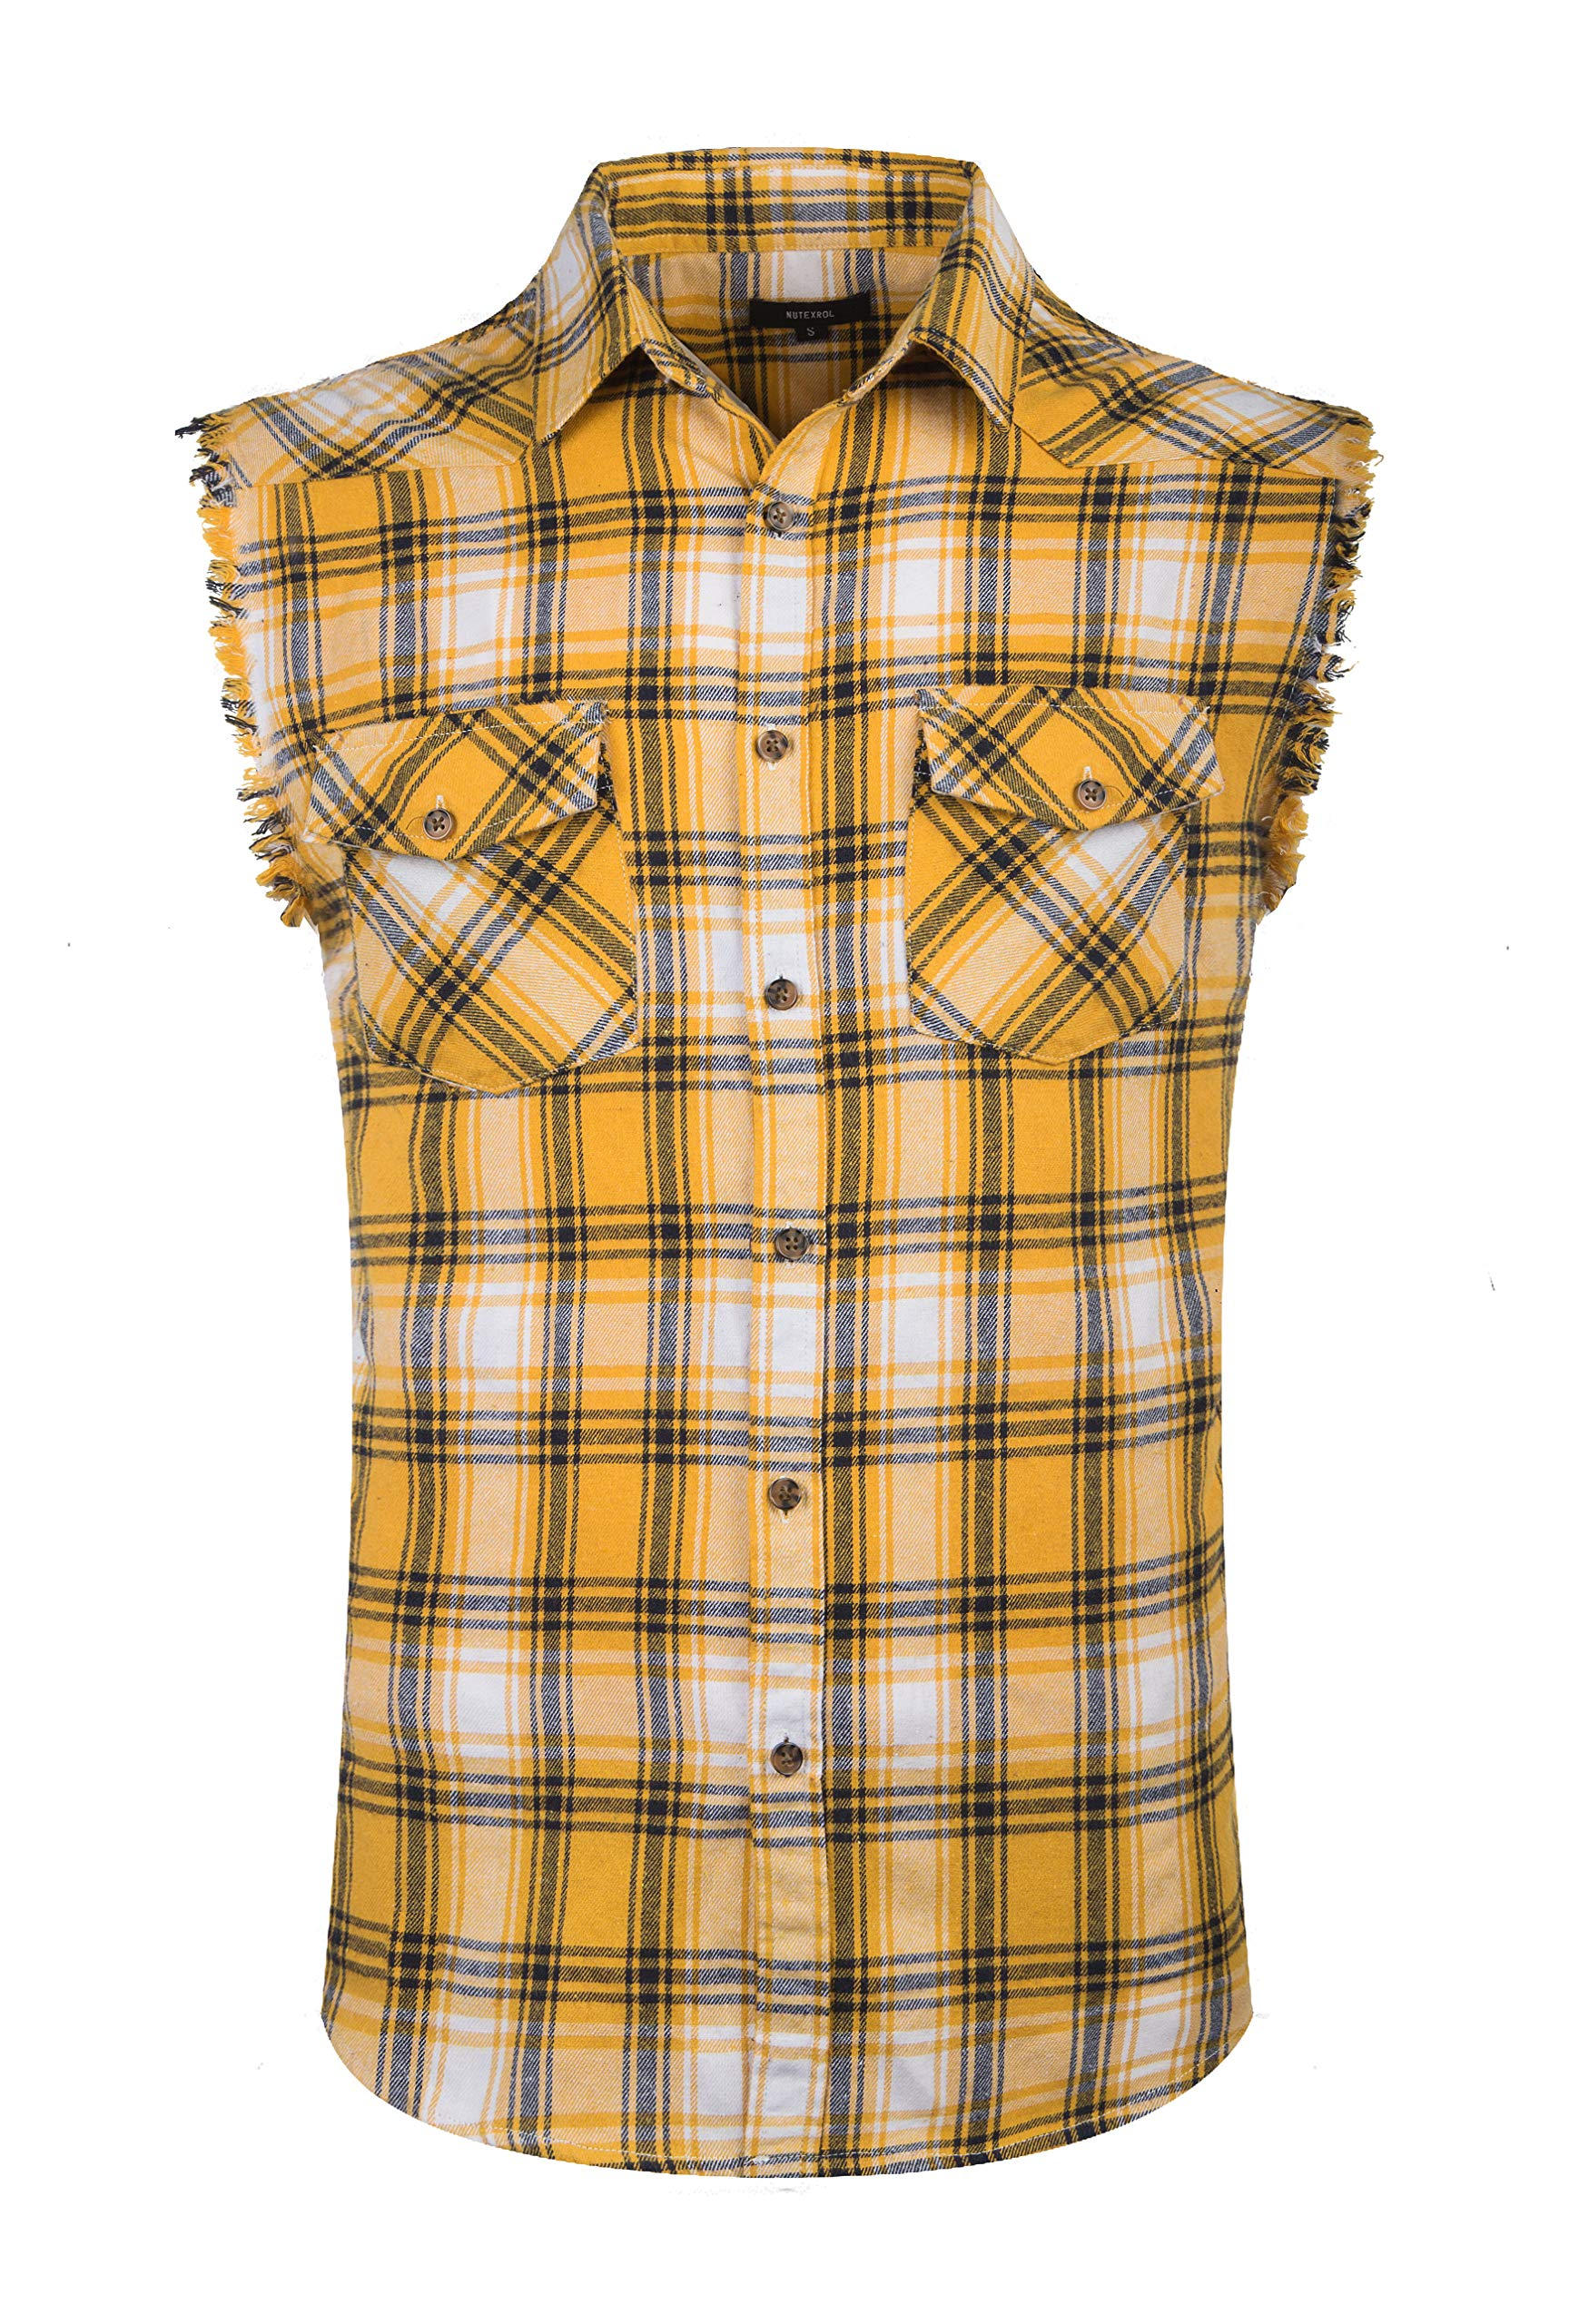 NUTEXROL Men's Casual Flannel Plaid Shirt Sleeveless Cotton Plus Size Vest Yellow M by NUTEXROL